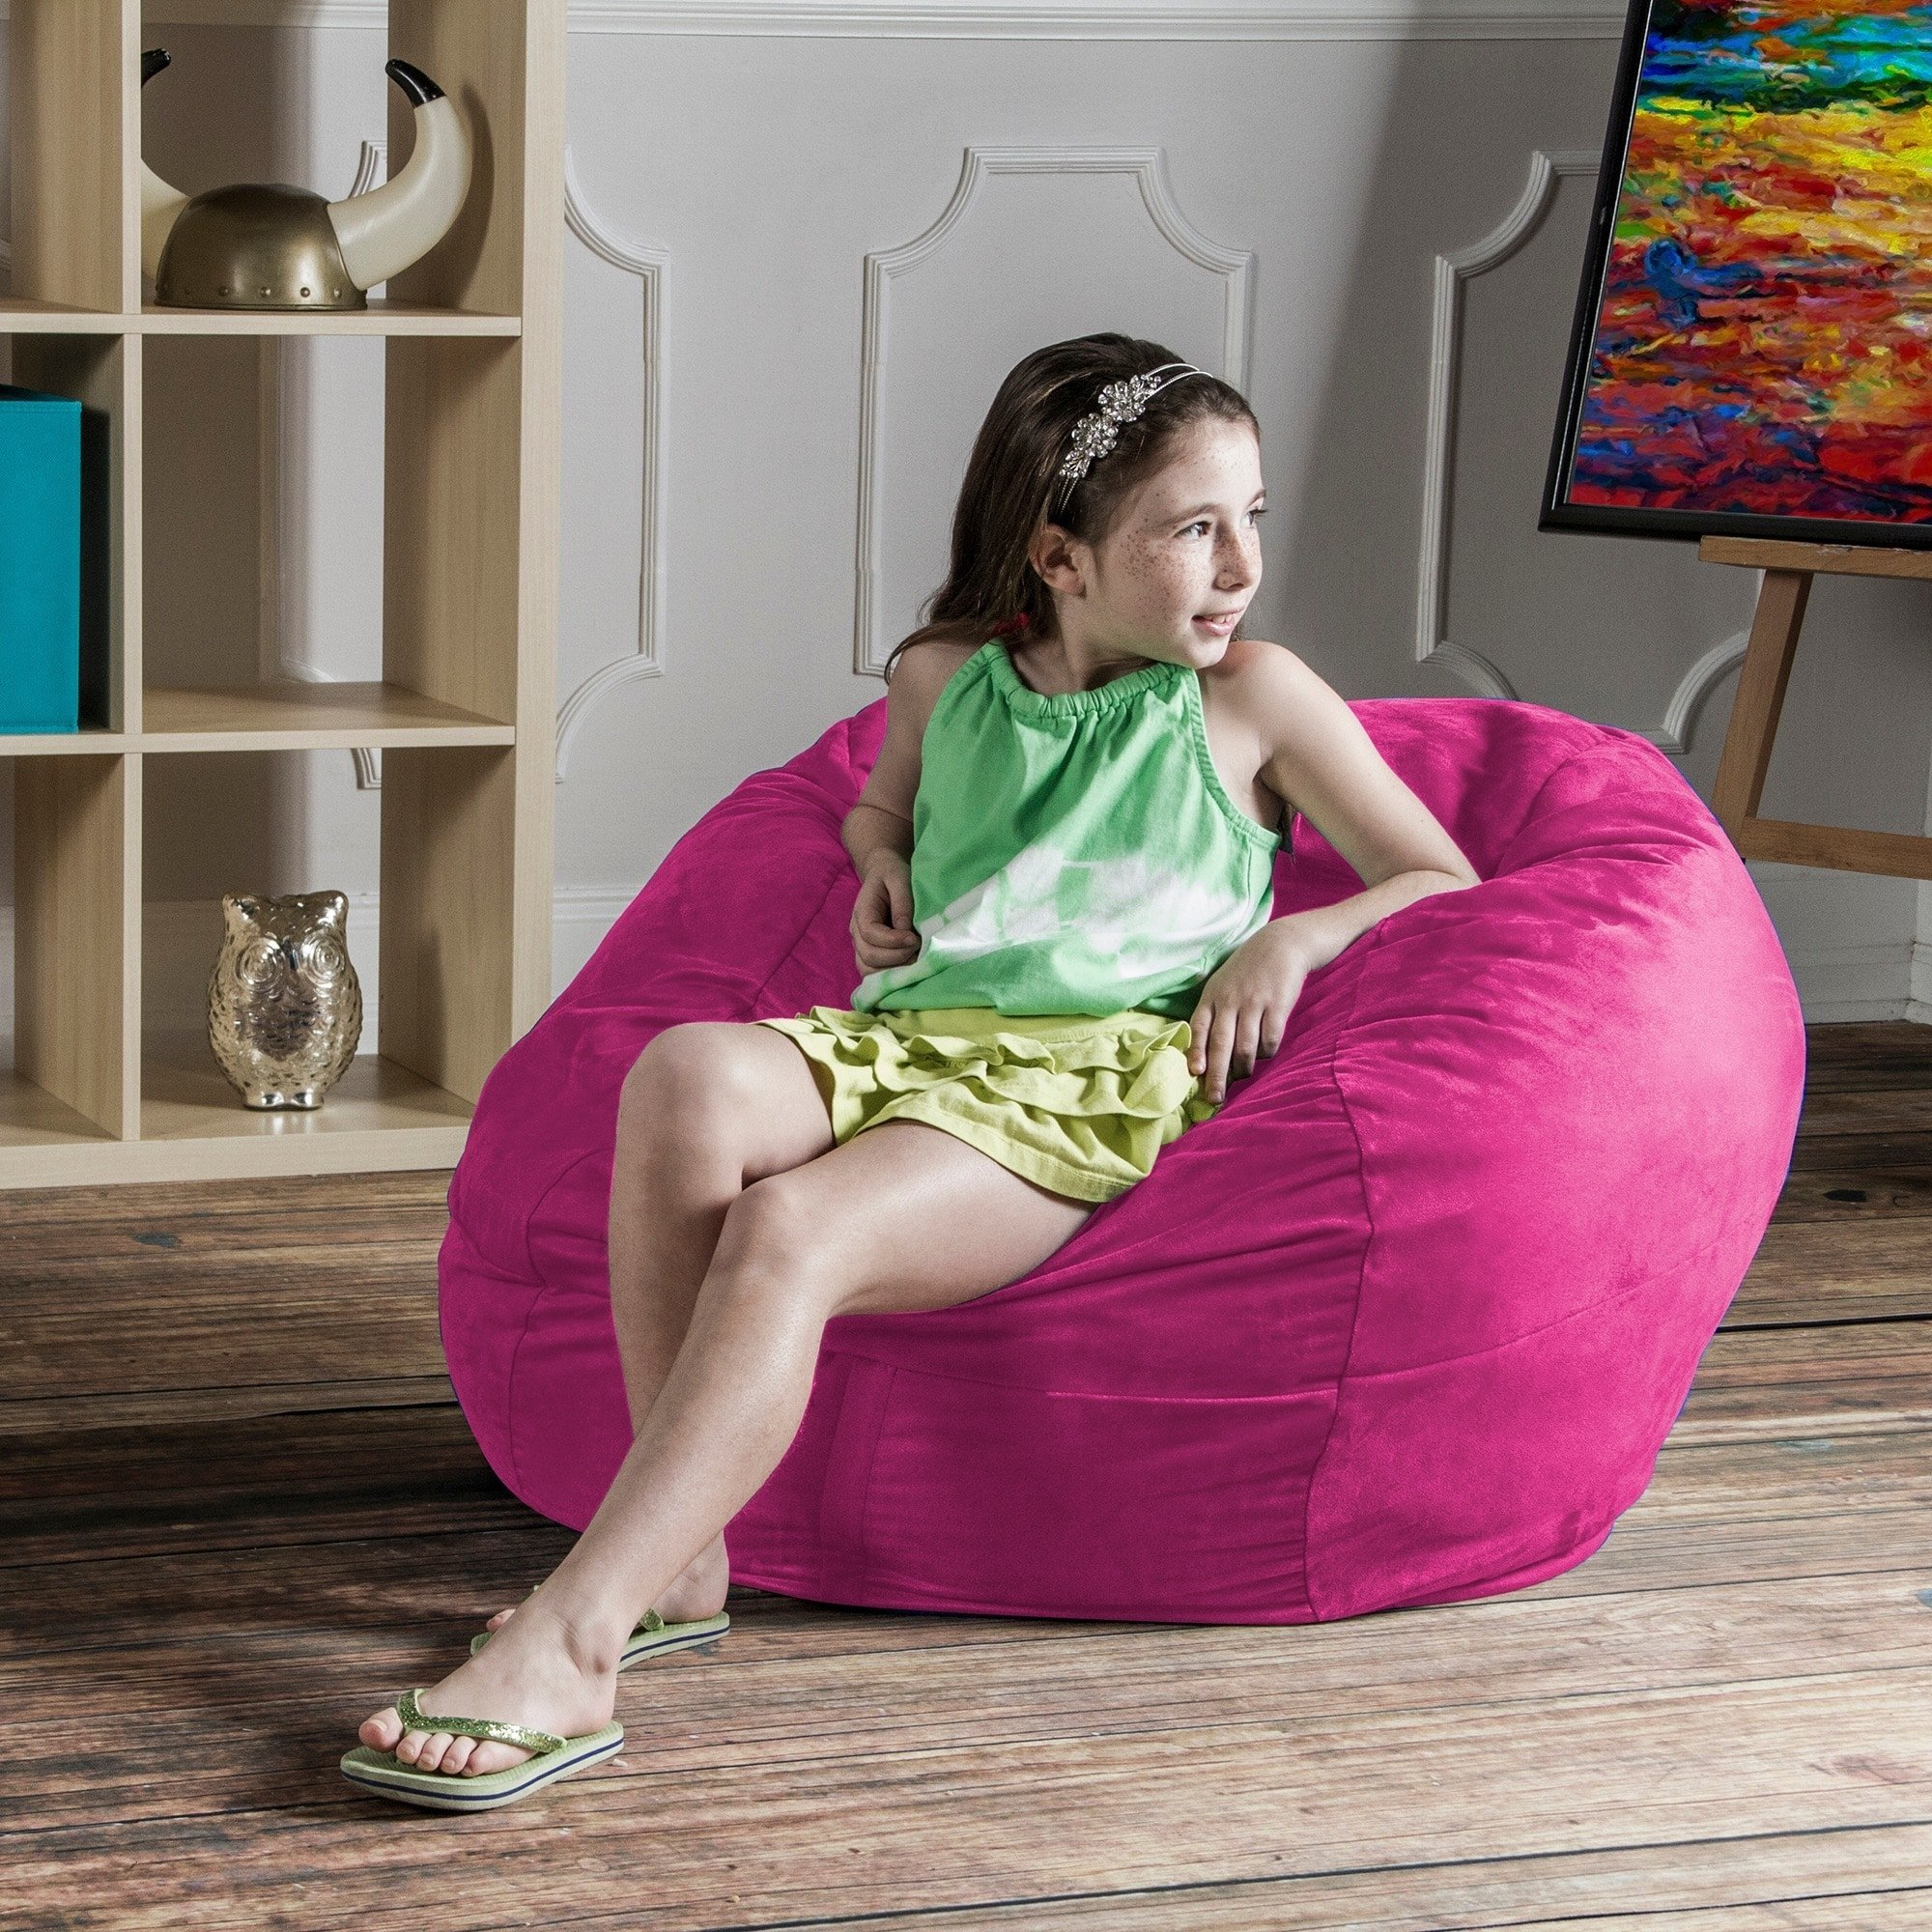 Jaxx Lounger Jr. (Microsuede Lime) (48''H x 24''W x 24''D) by Studio one Up (Image #3)